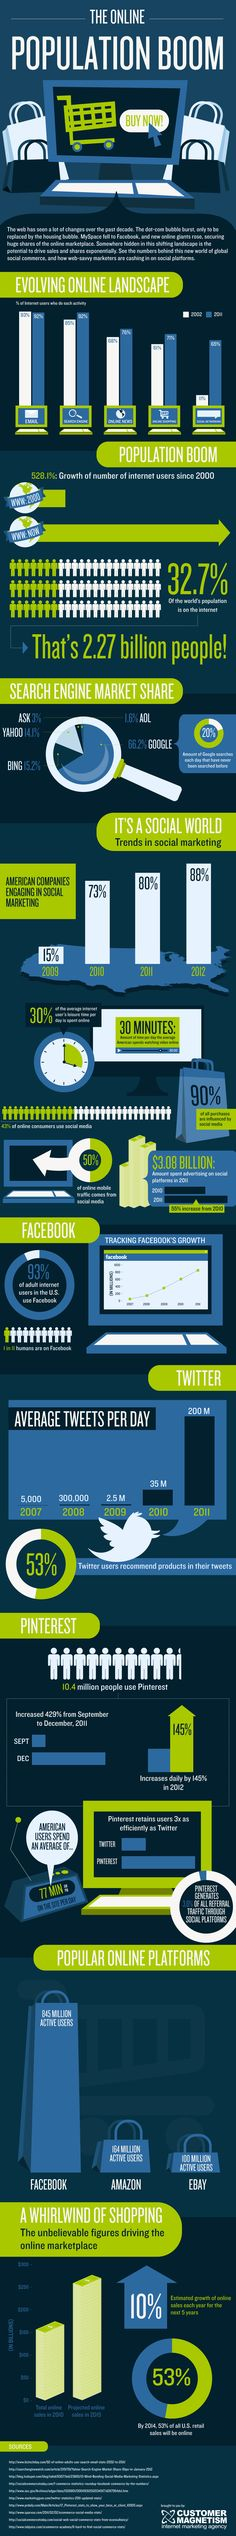 ¿Qué hacemos online? #Infografia What Do We Do Online? via @MobileMktrDaily